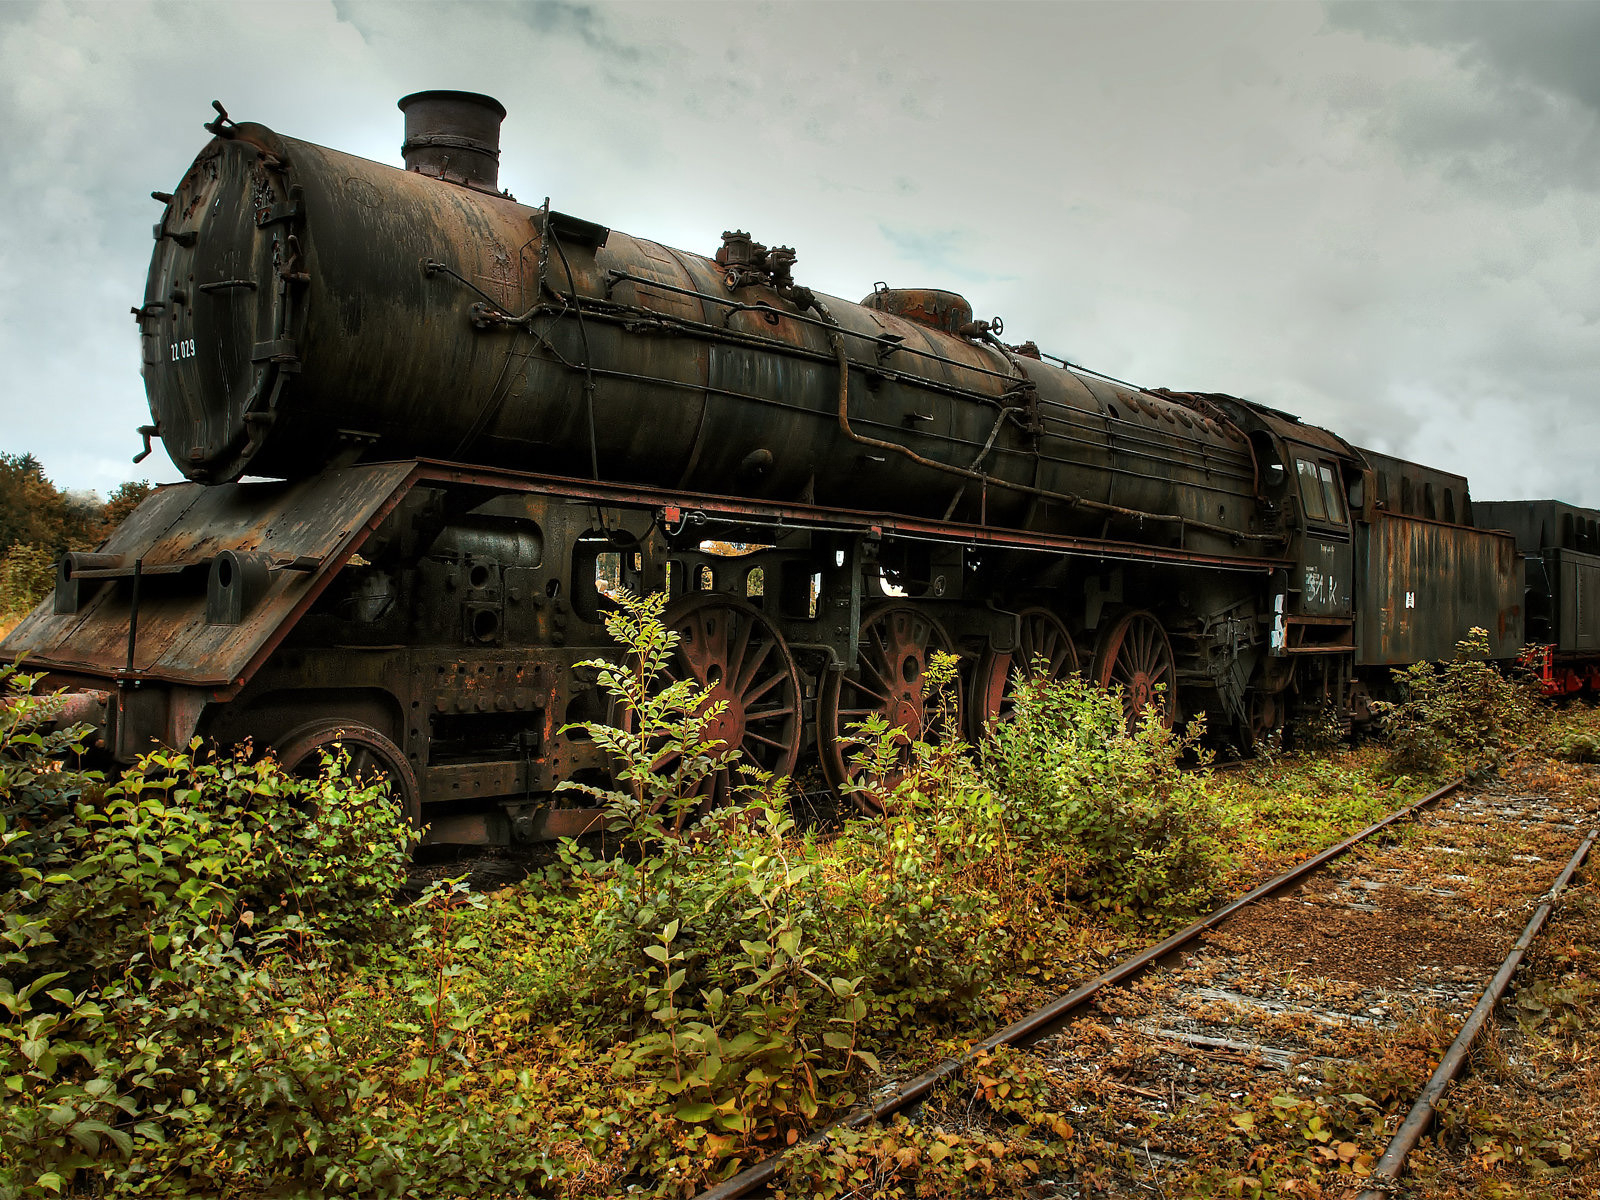 Old steam locomotive wallpapers and images   wallpapers pictures 1600x1200